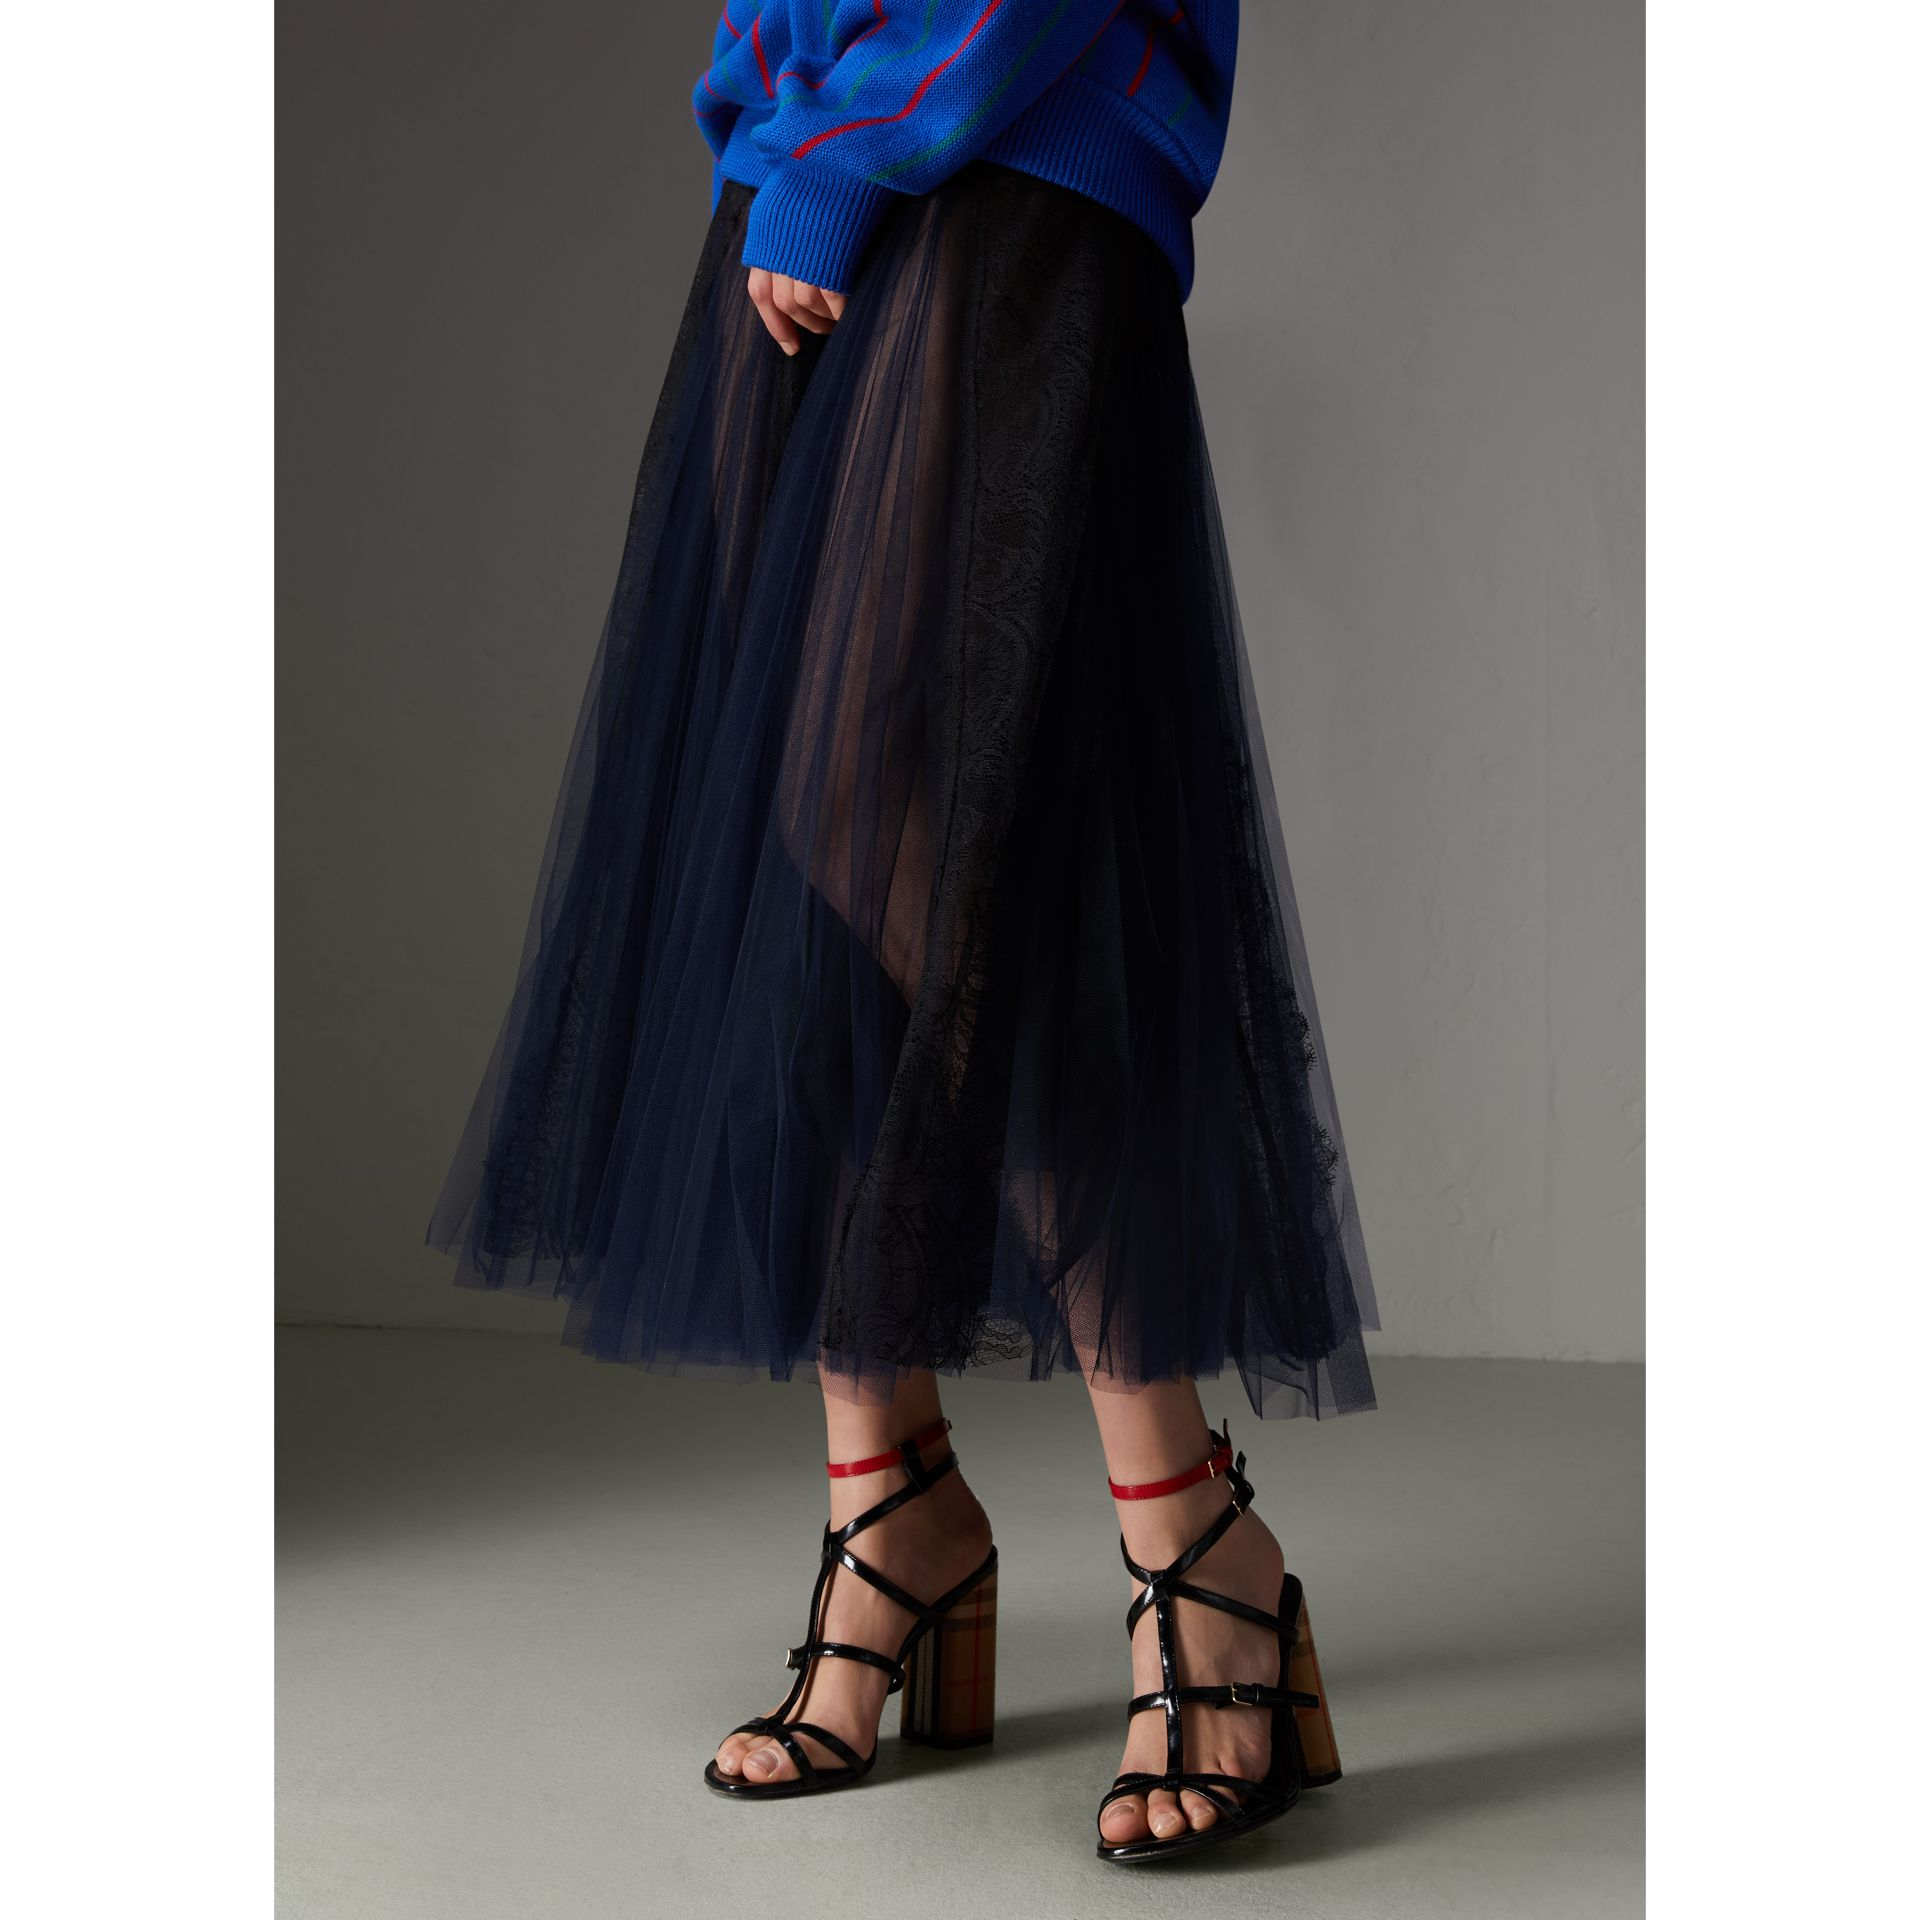 Lace Panel Pleated Tulle Skirt in Navy - Women | Burberry - gallery image 4